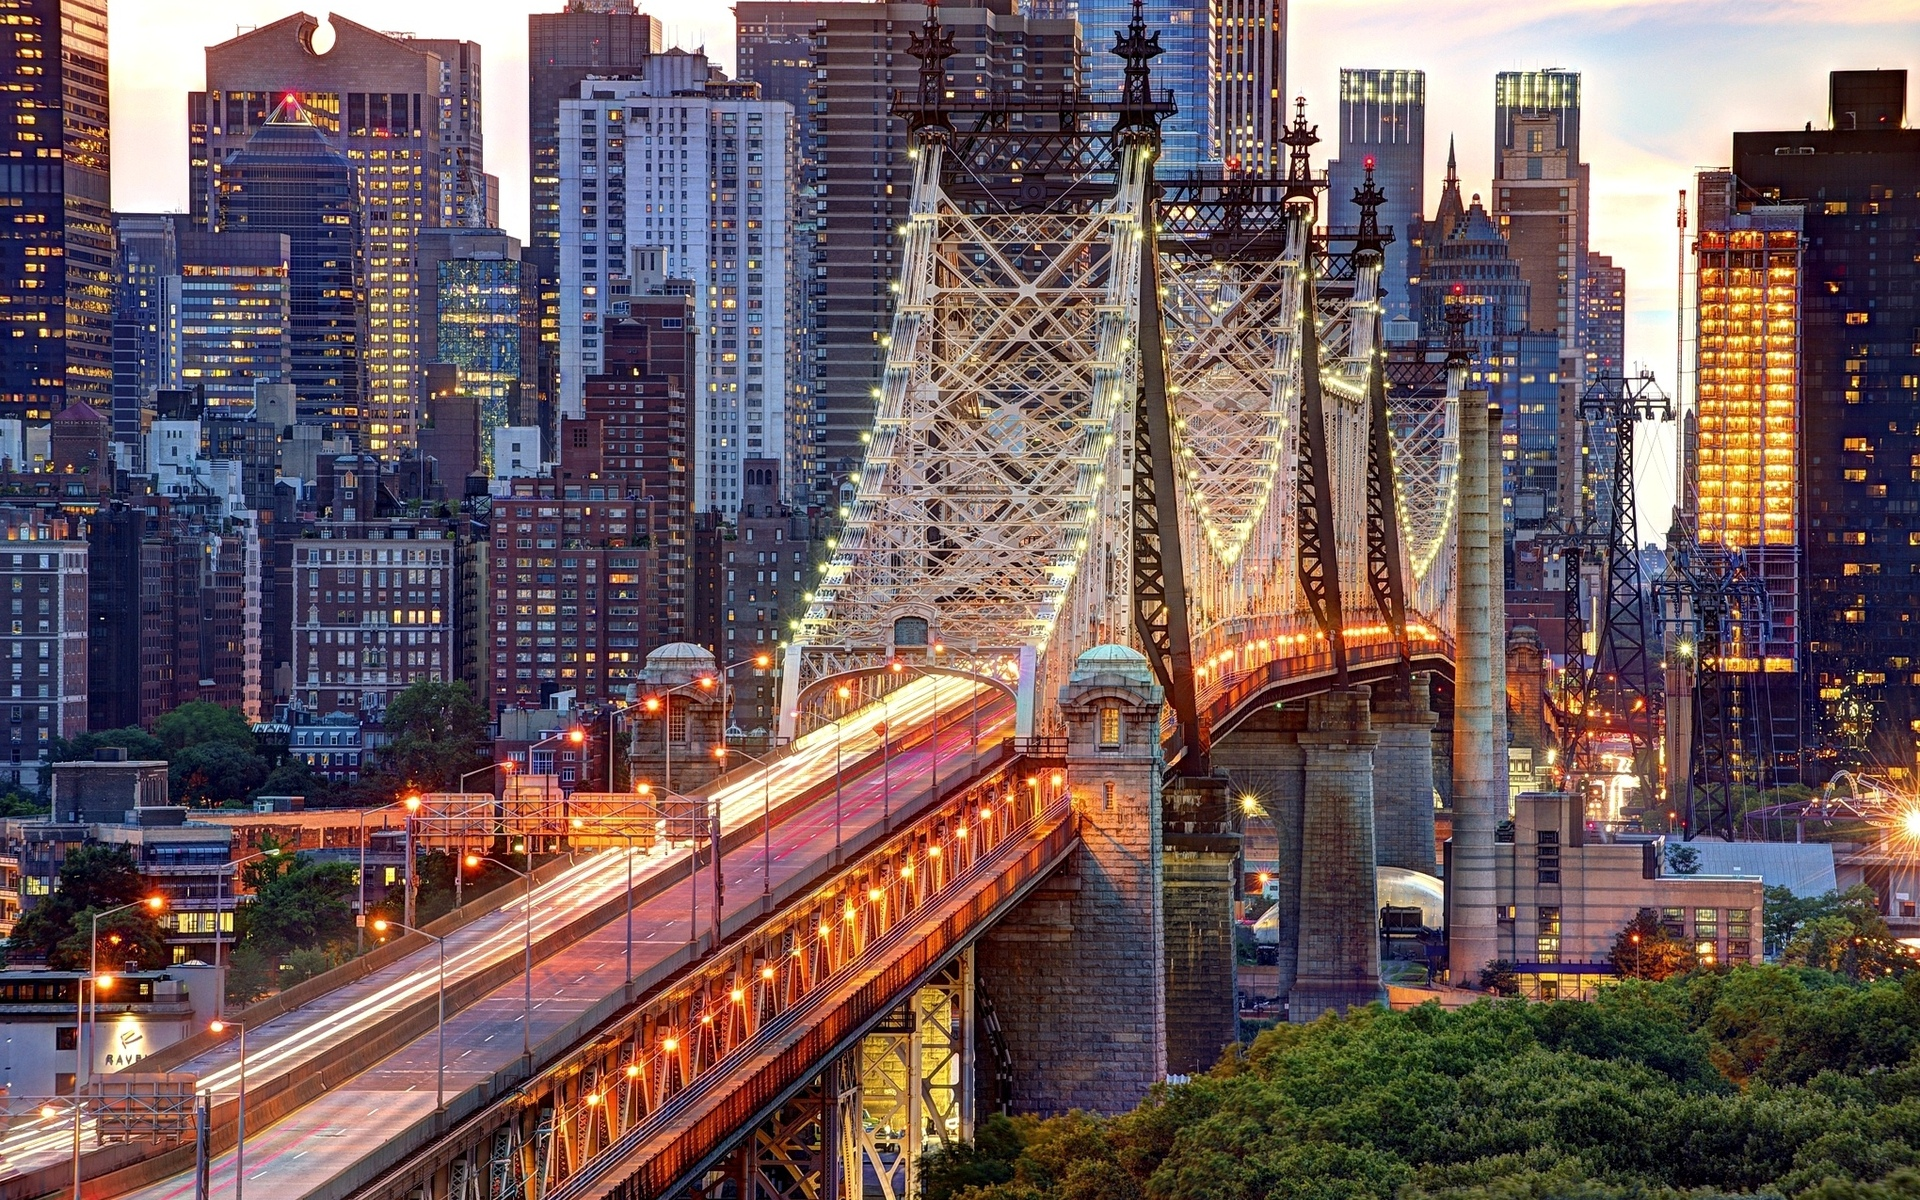 usa, нью-йорк, queensboro bridge, new york, nyc, east river, new york city, manhattan